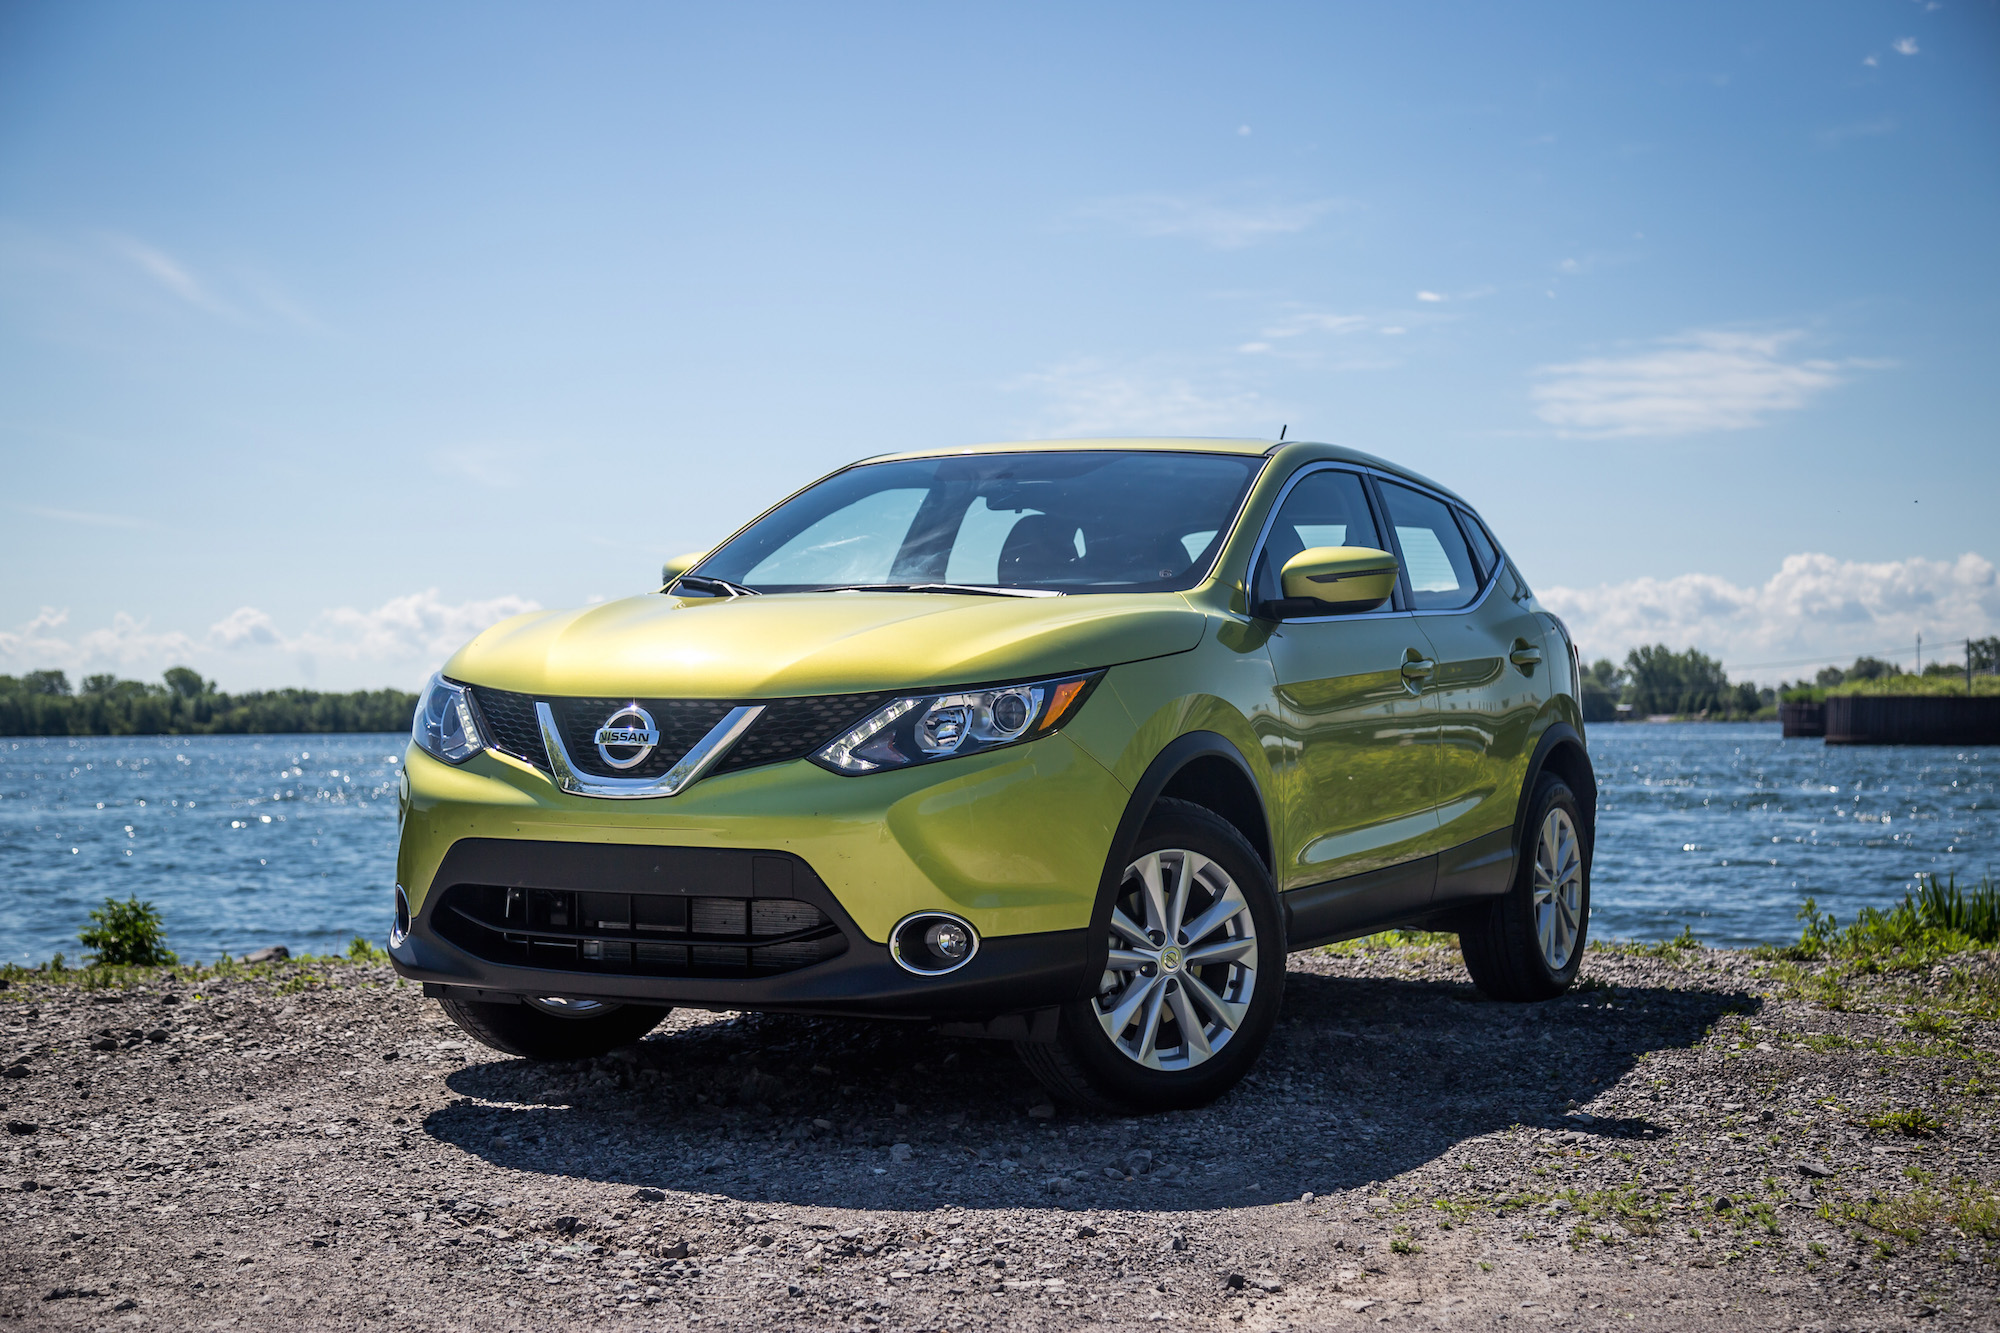 Nissan Qashqai Canada Review >> First Drive: 2017 Nissan Qashqai | Canadian Auto Review